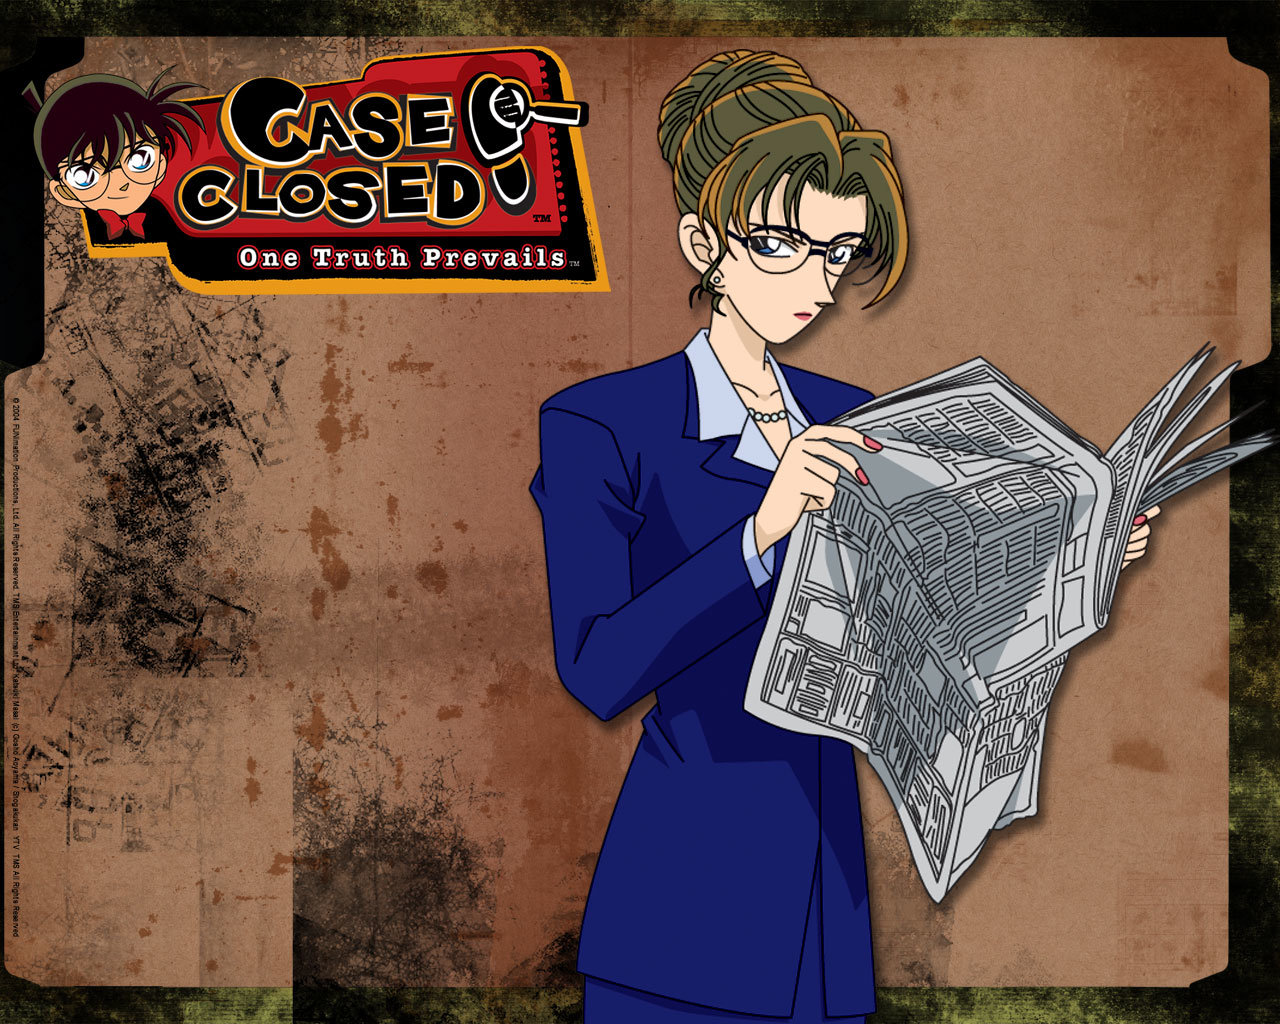 Best Case Closed wallpaper ID:52281 for High Resolution hd 1280x1024 computer